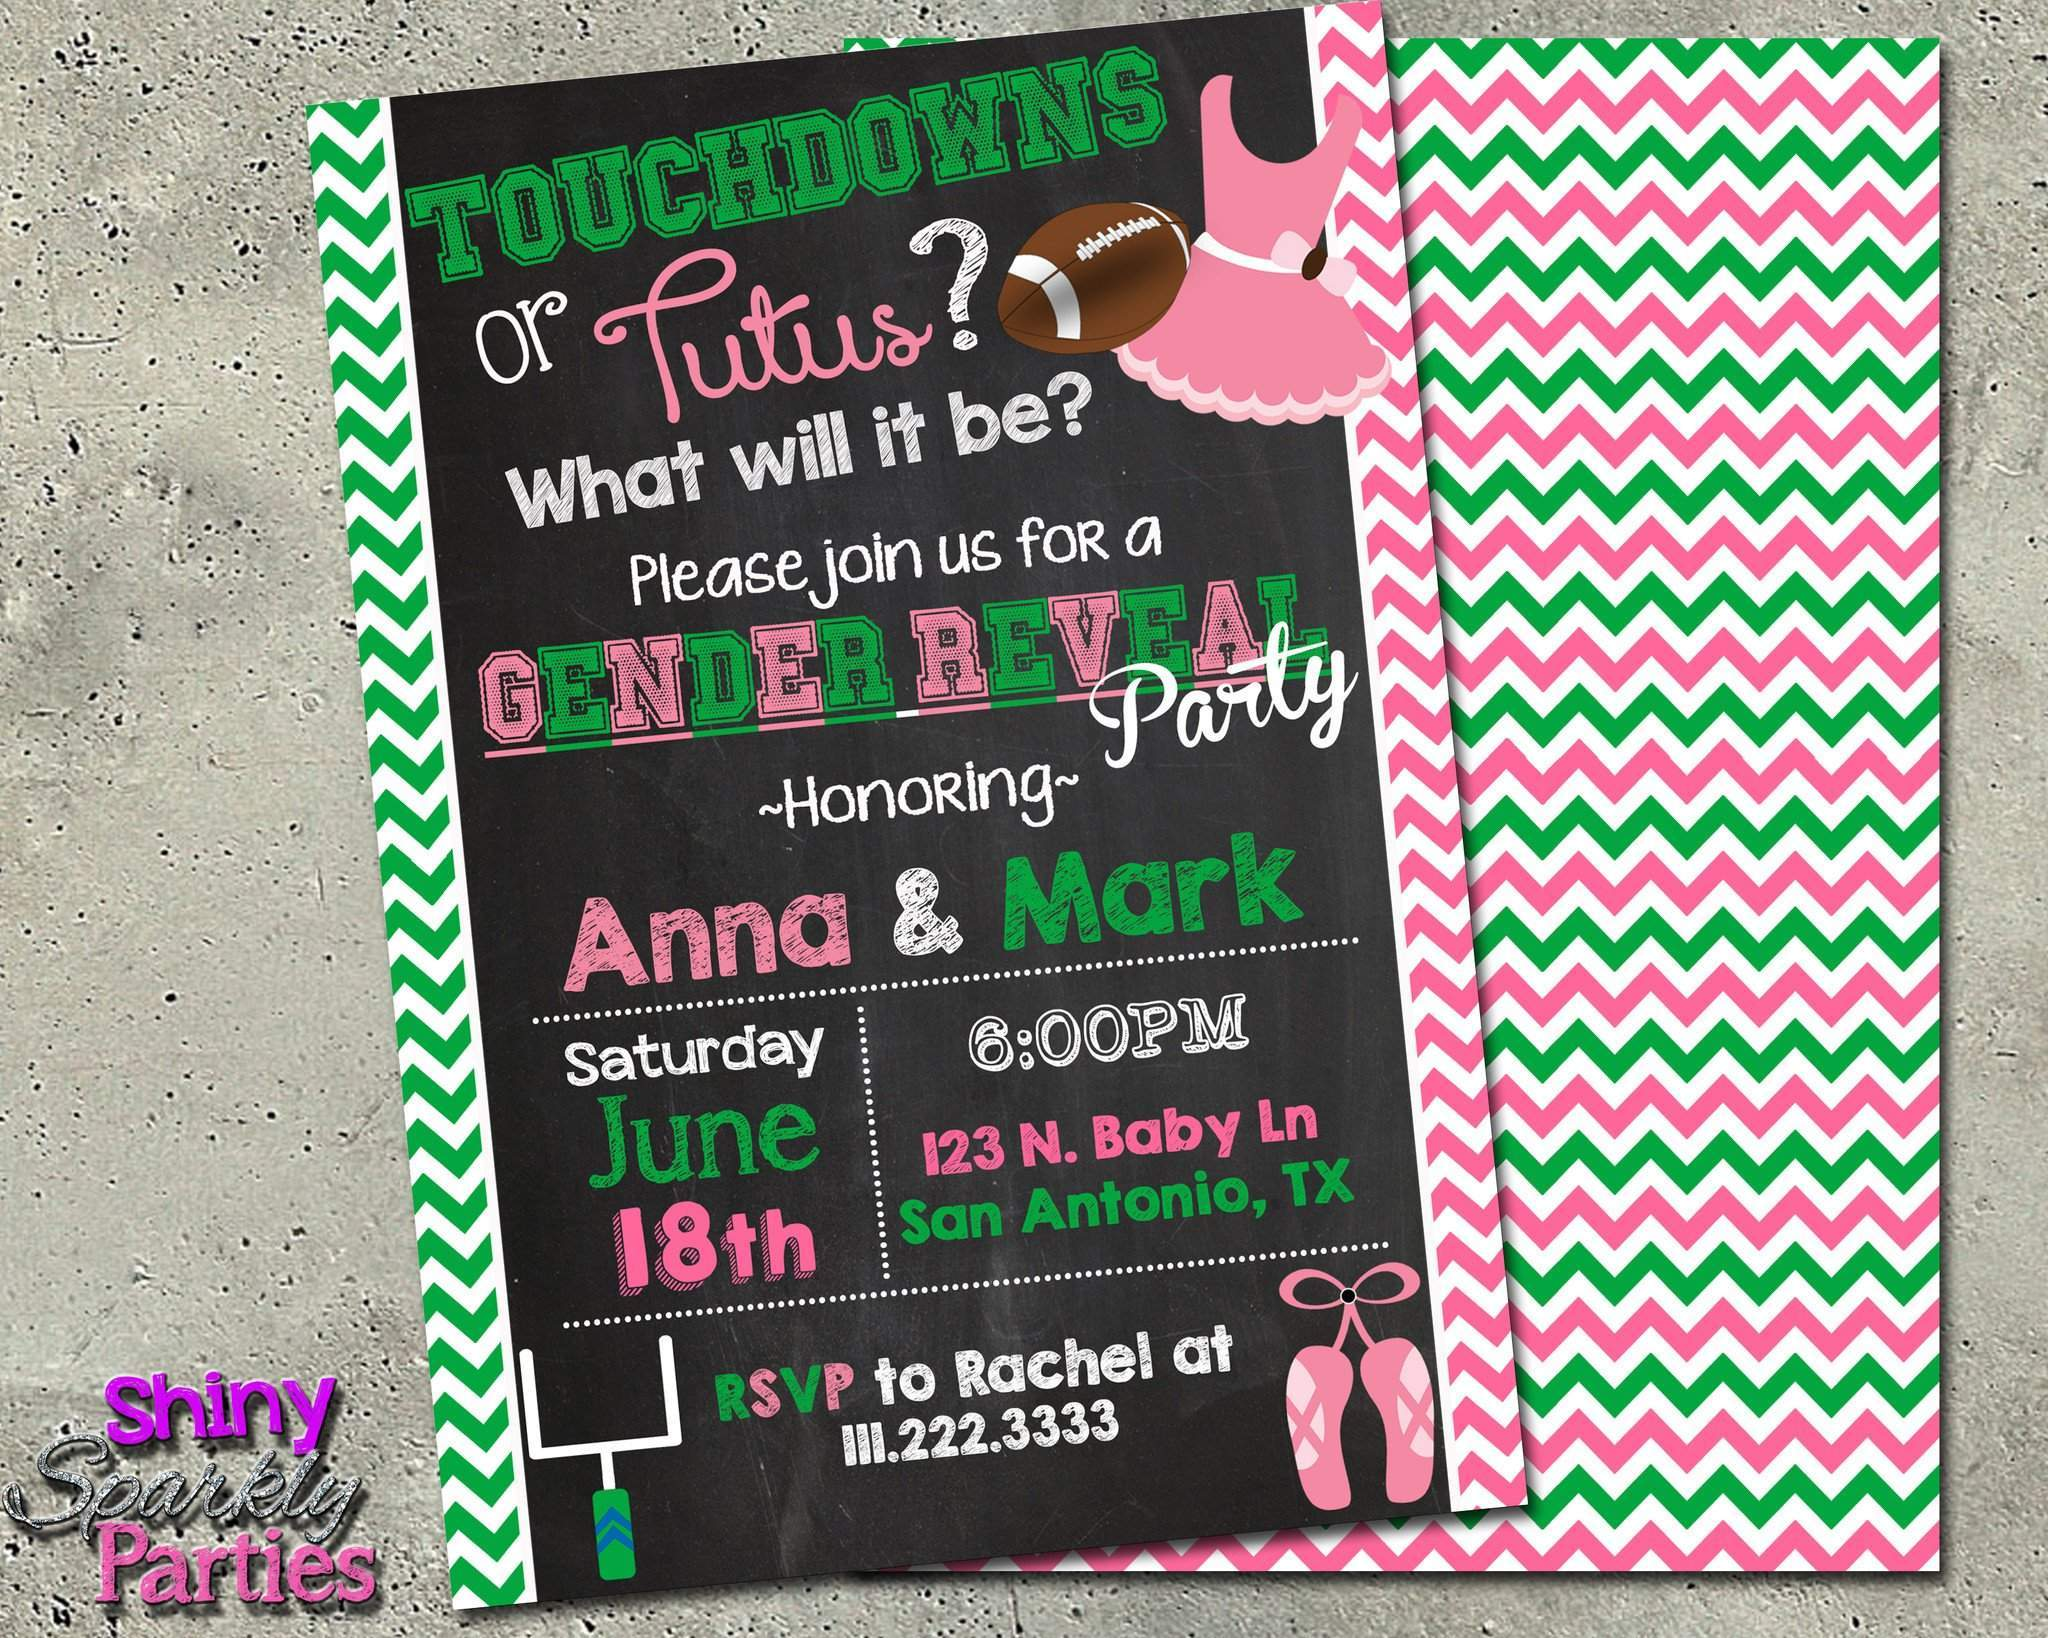 photograph regarding Gender Reveal Printable referred to as Touchdowns Or Tutus Gender Clarify Get together Invitation